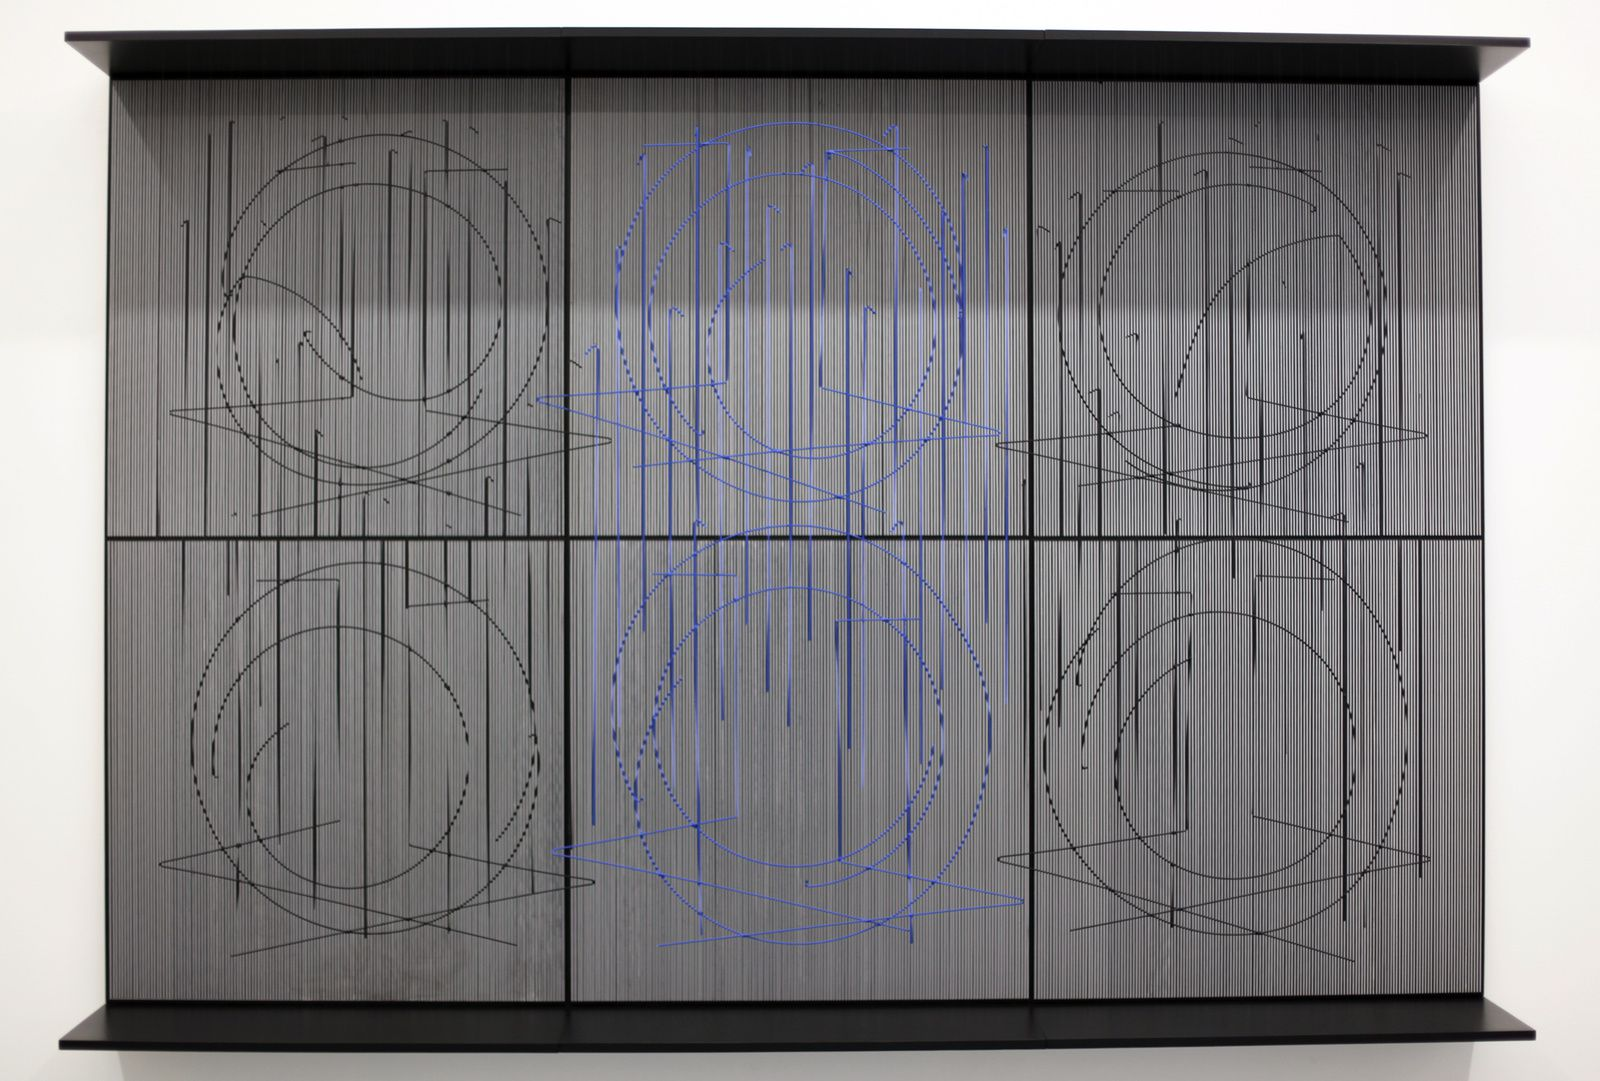 """Ecriture bleu central"", 1999 de J.R Soto Courtesy Galerie Perrotin © Photo Éric Simon"